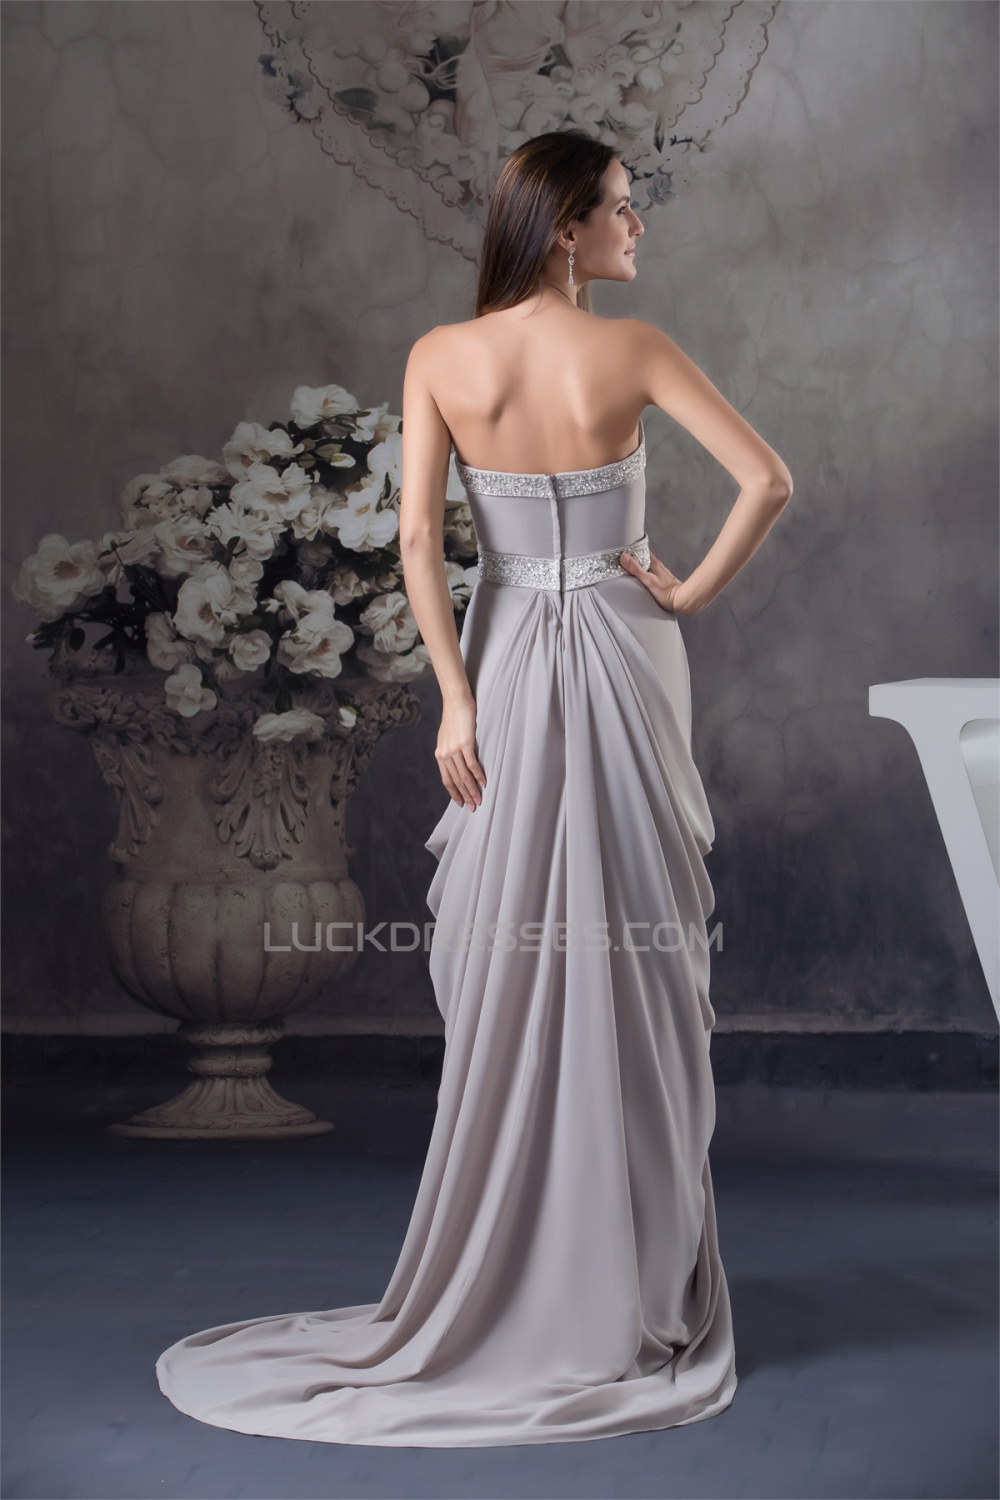 e19c447f1f81c0 Sheath Column Sweetheart Chiffon Puddle Train Long Mother of the Bride  Dresses with A Jacket 2040096